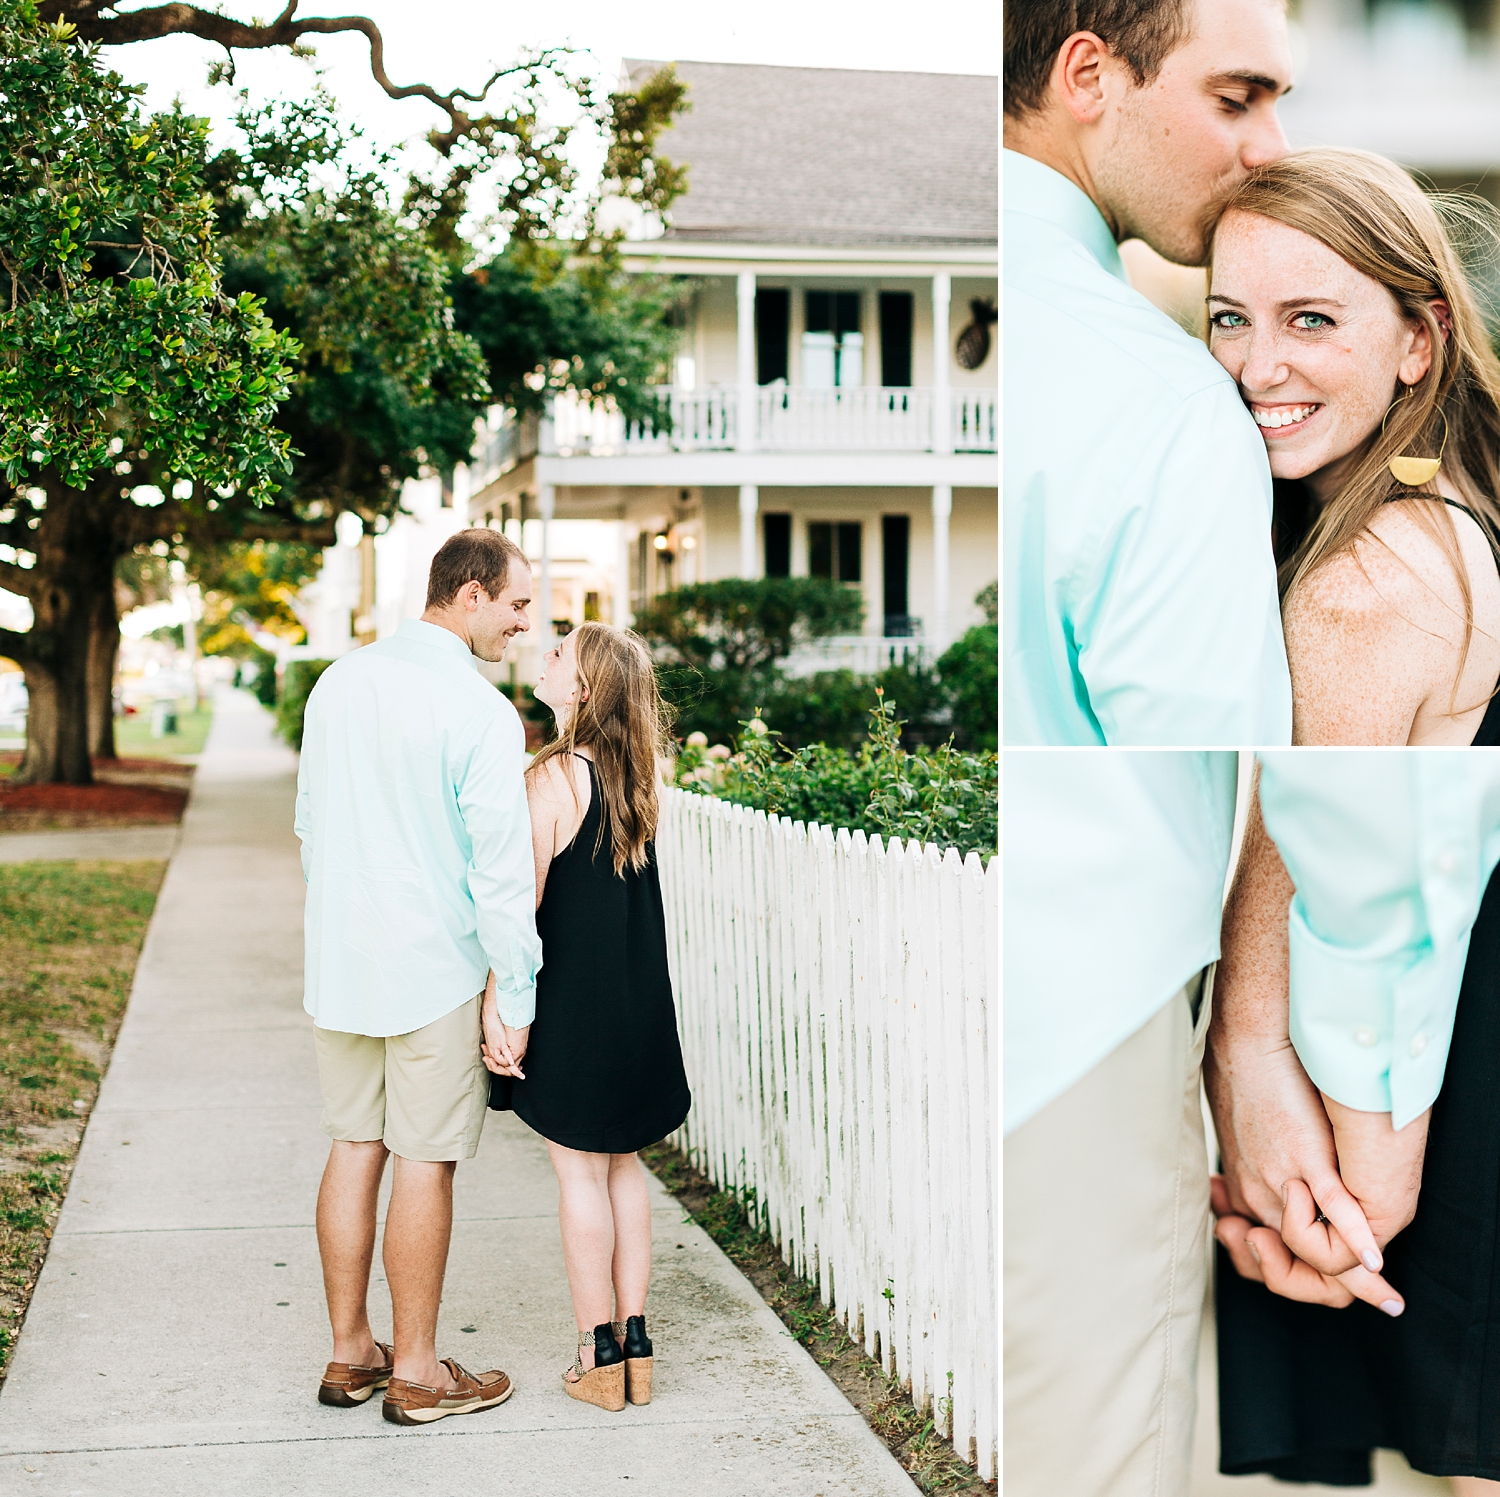 engagement session in the small coastal town of southport, north carolina.